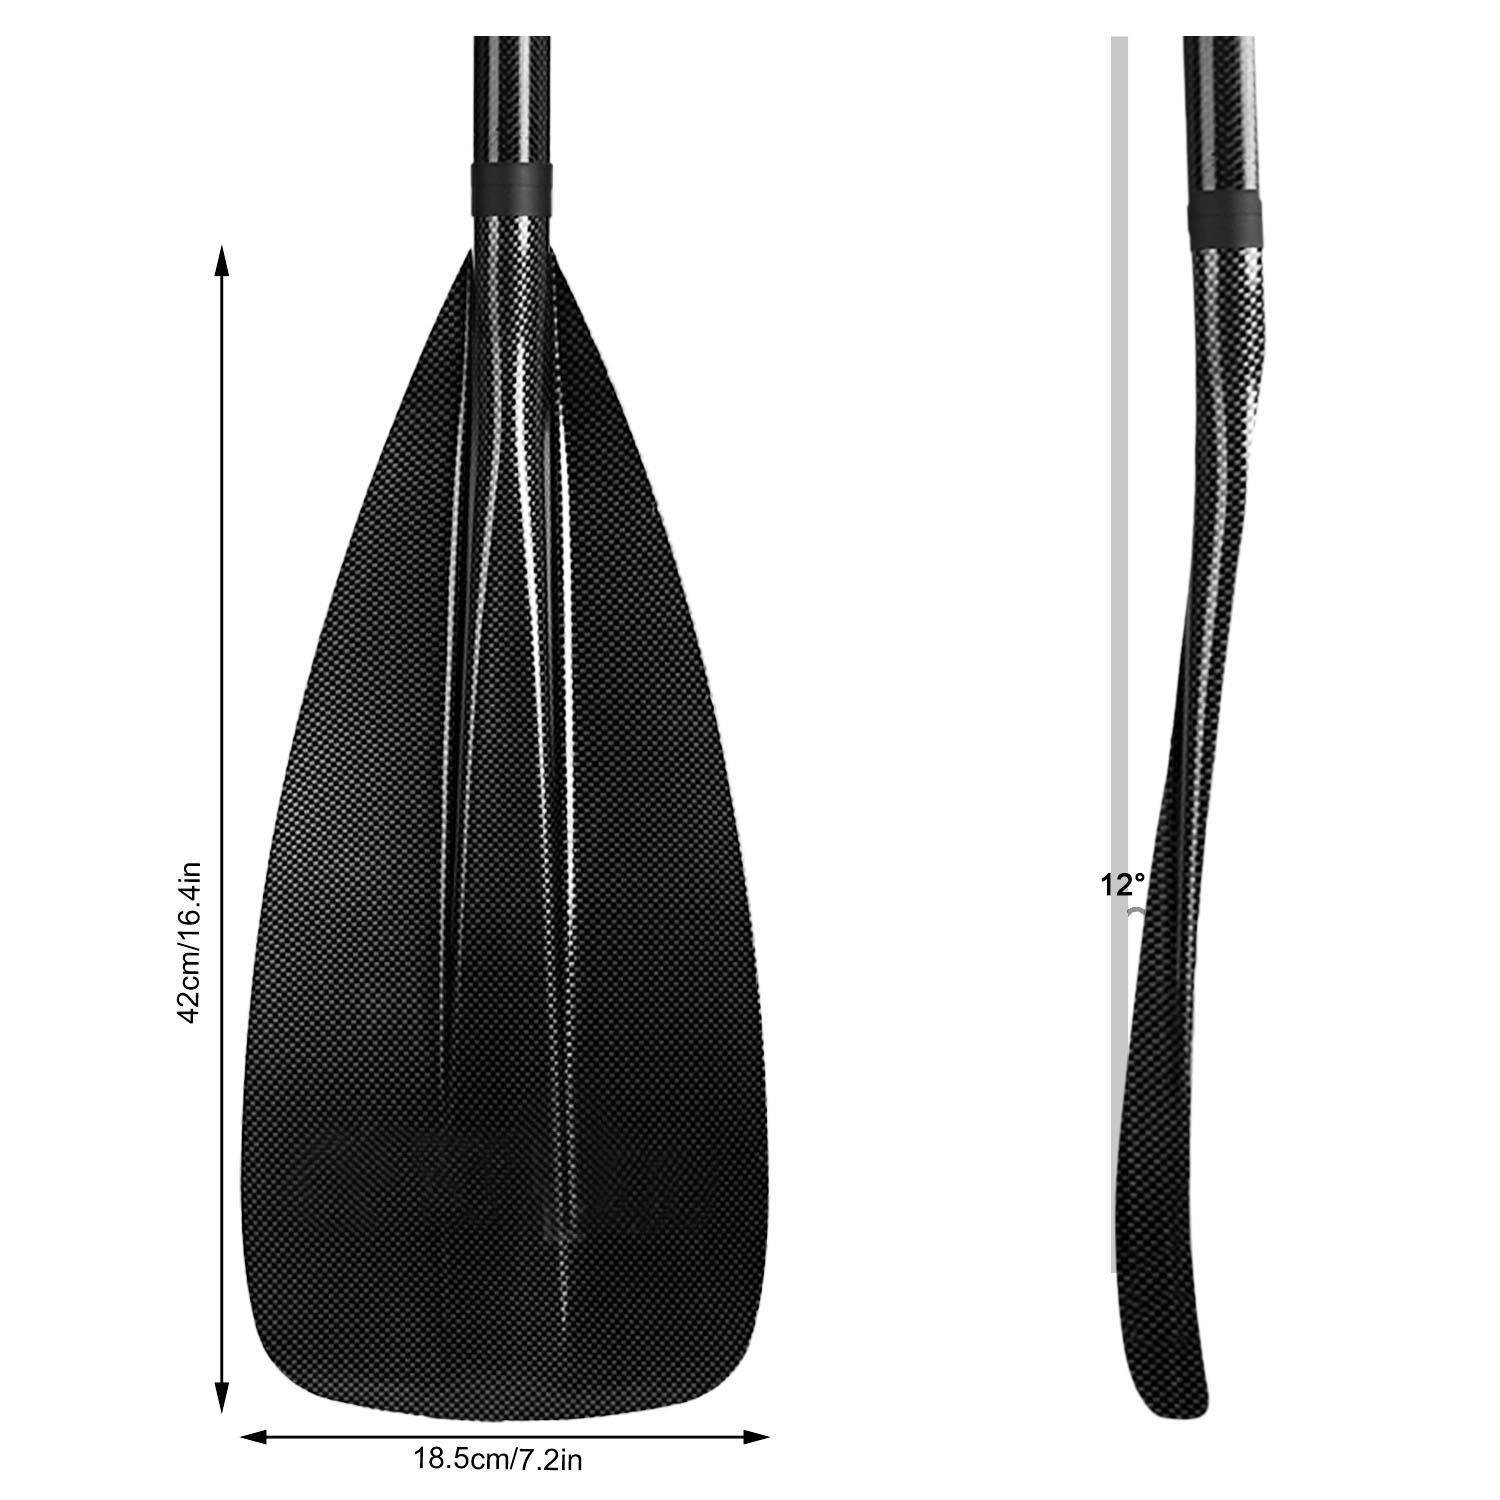 3 Piece Adjustable Stand Up Paddle Boarding Paddle Durable with Carrying Bag 4